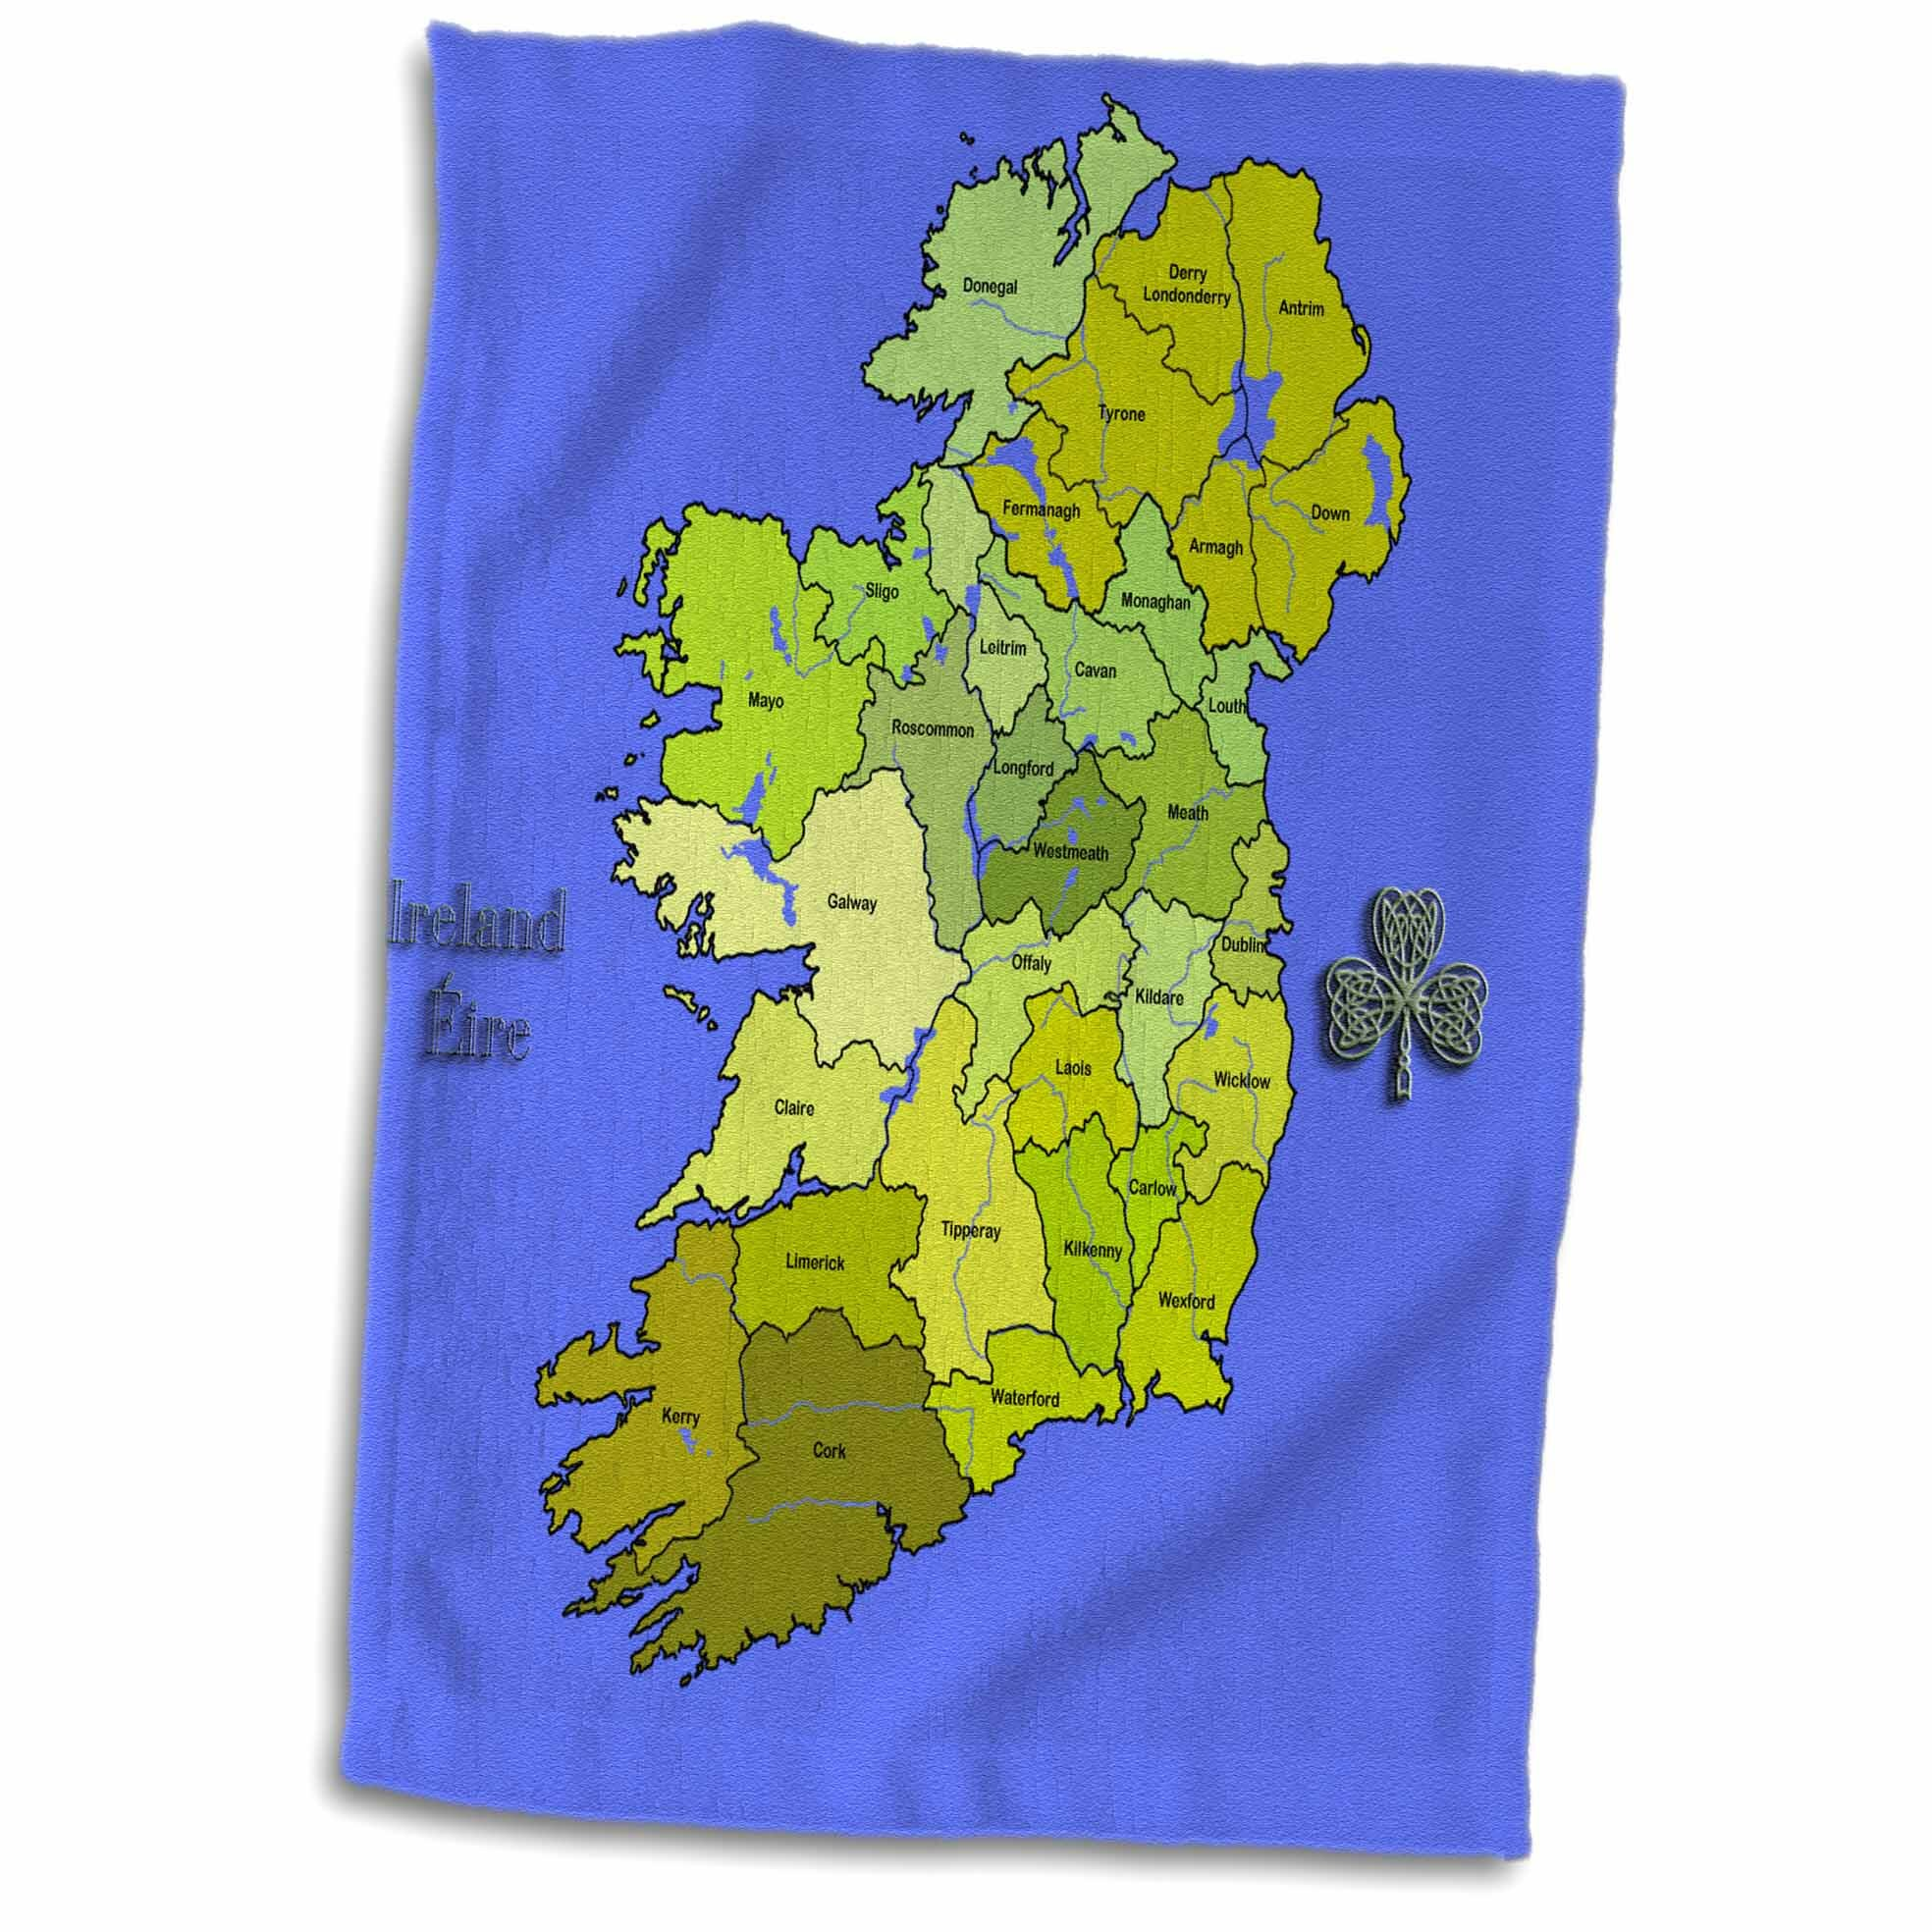 Map Of Republic Of Ireland Showing Counties.Haigh Ful Map Of All Ireland The Irish Republic And Northern Ireland With All Counties Shown Hand Towel